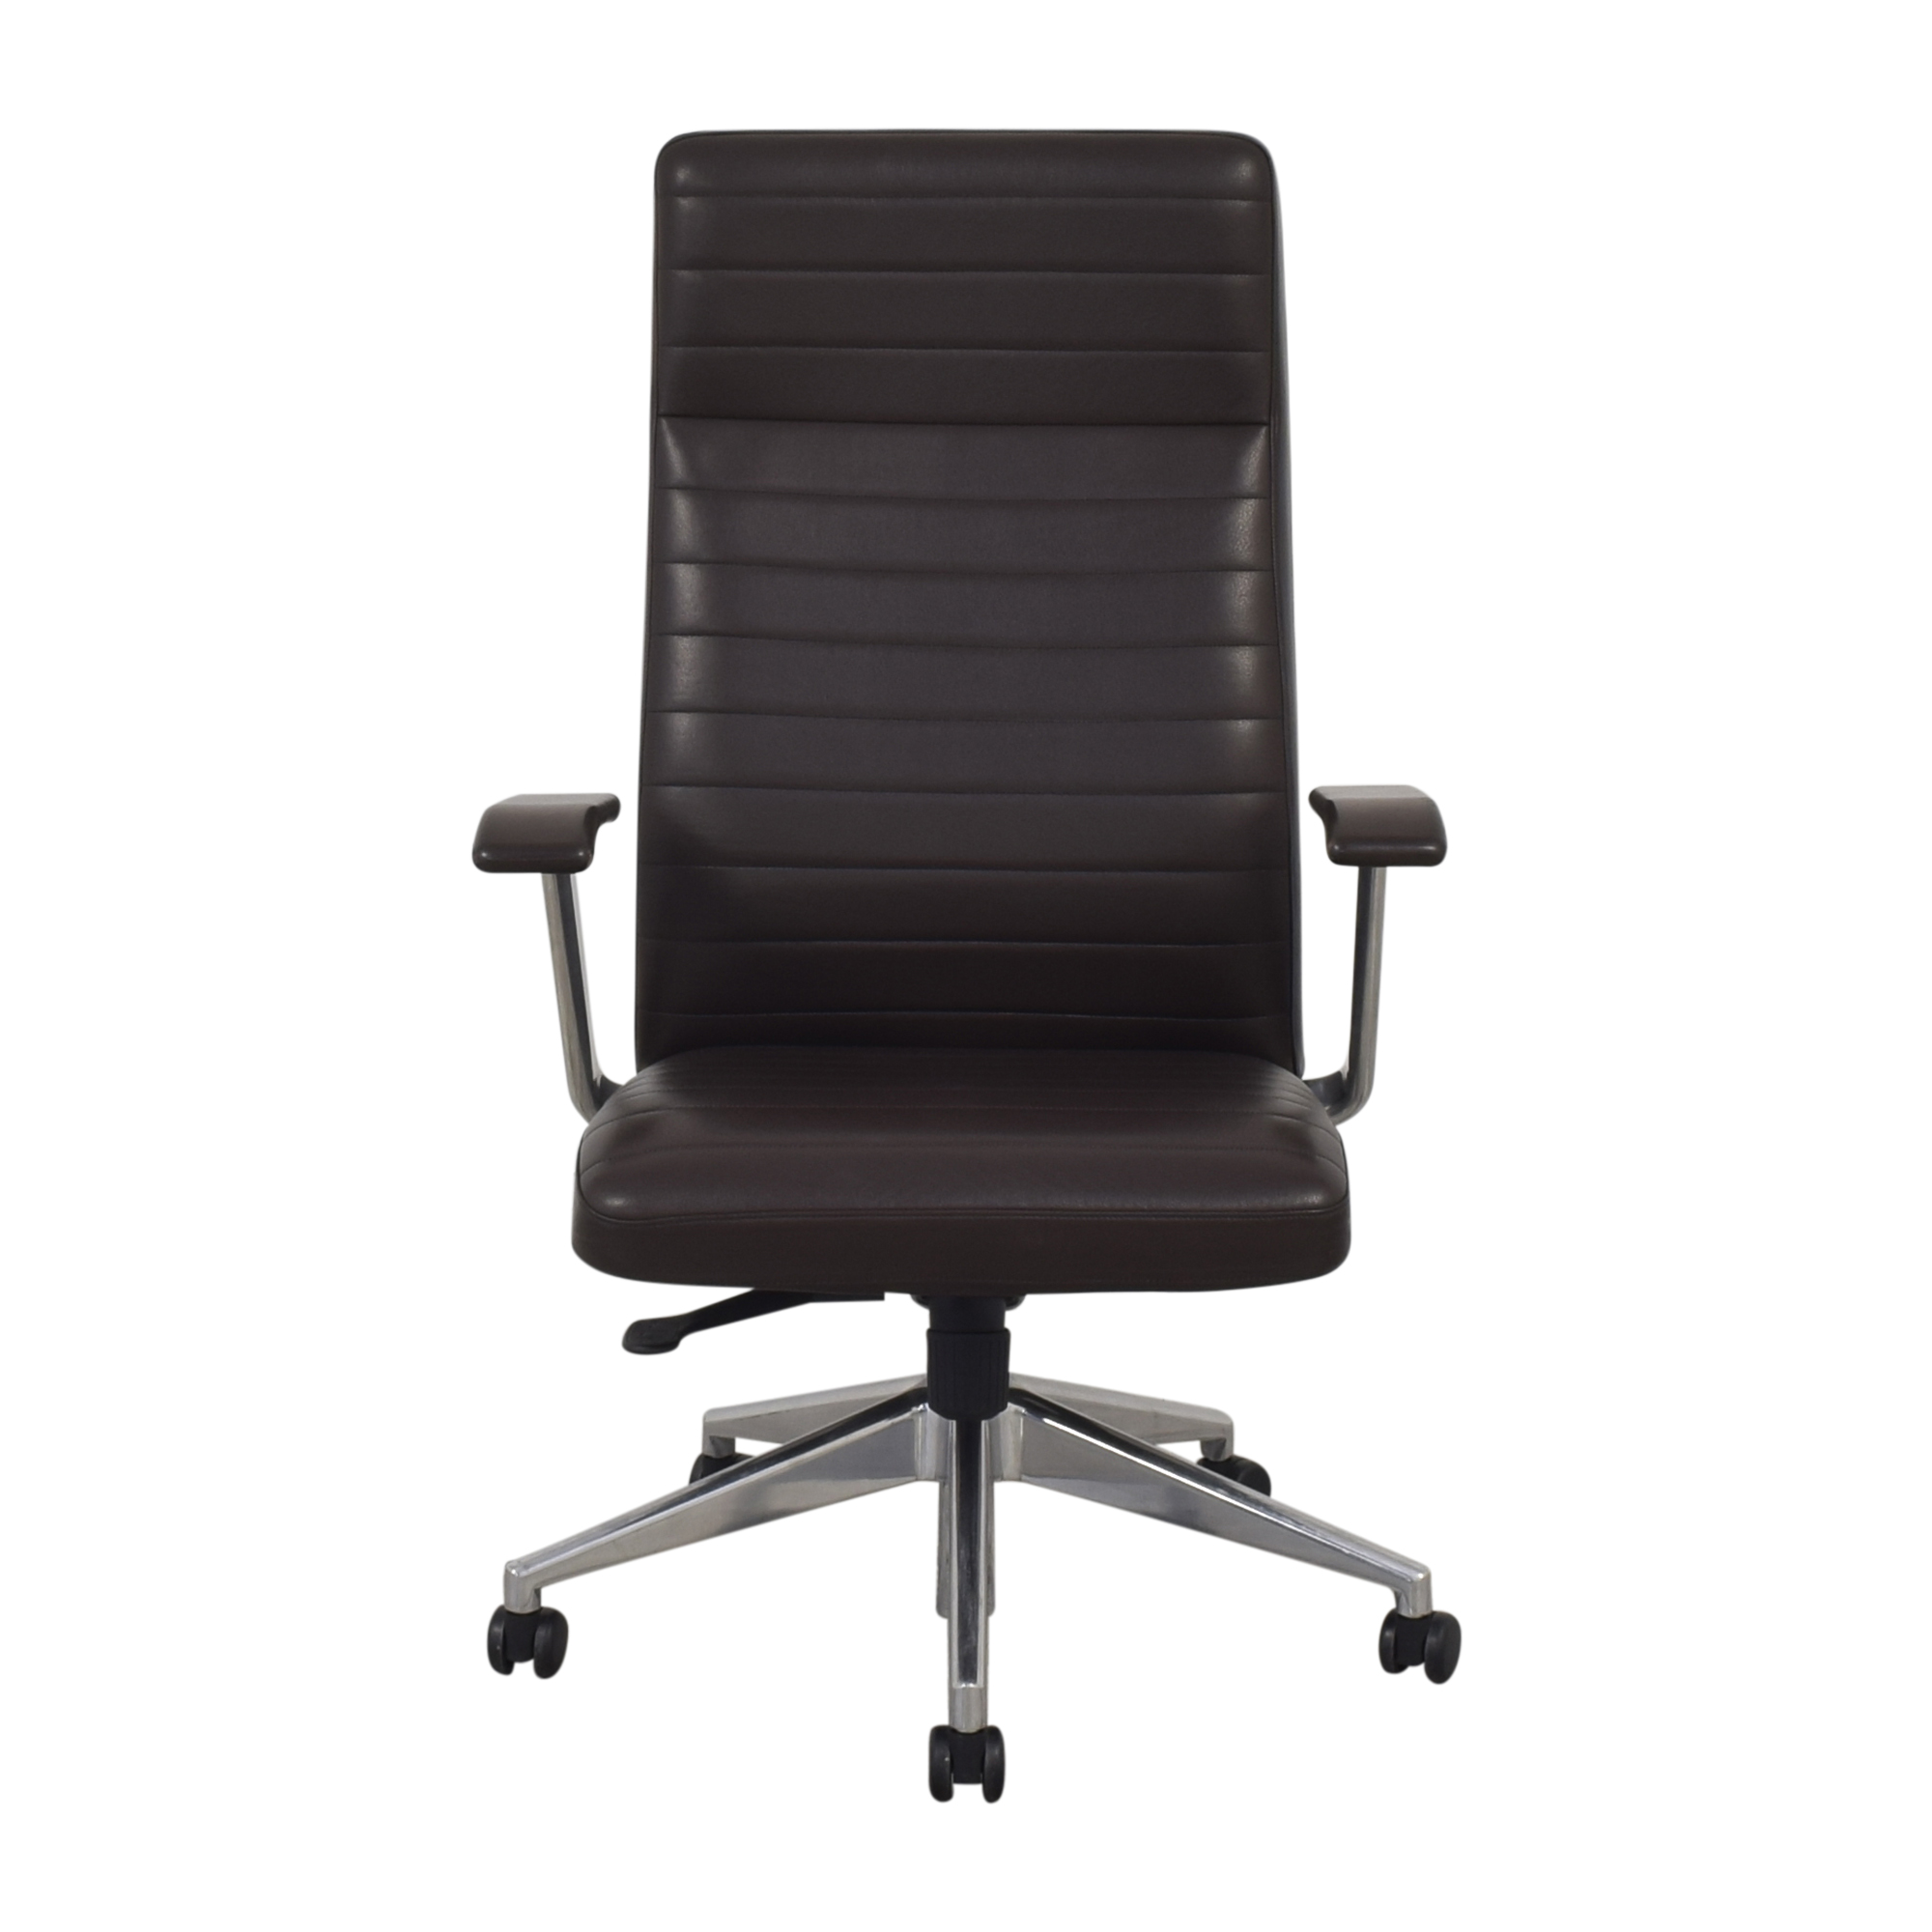 HBF HBF Mode High Back Channel Stitched Swivel Chair ma